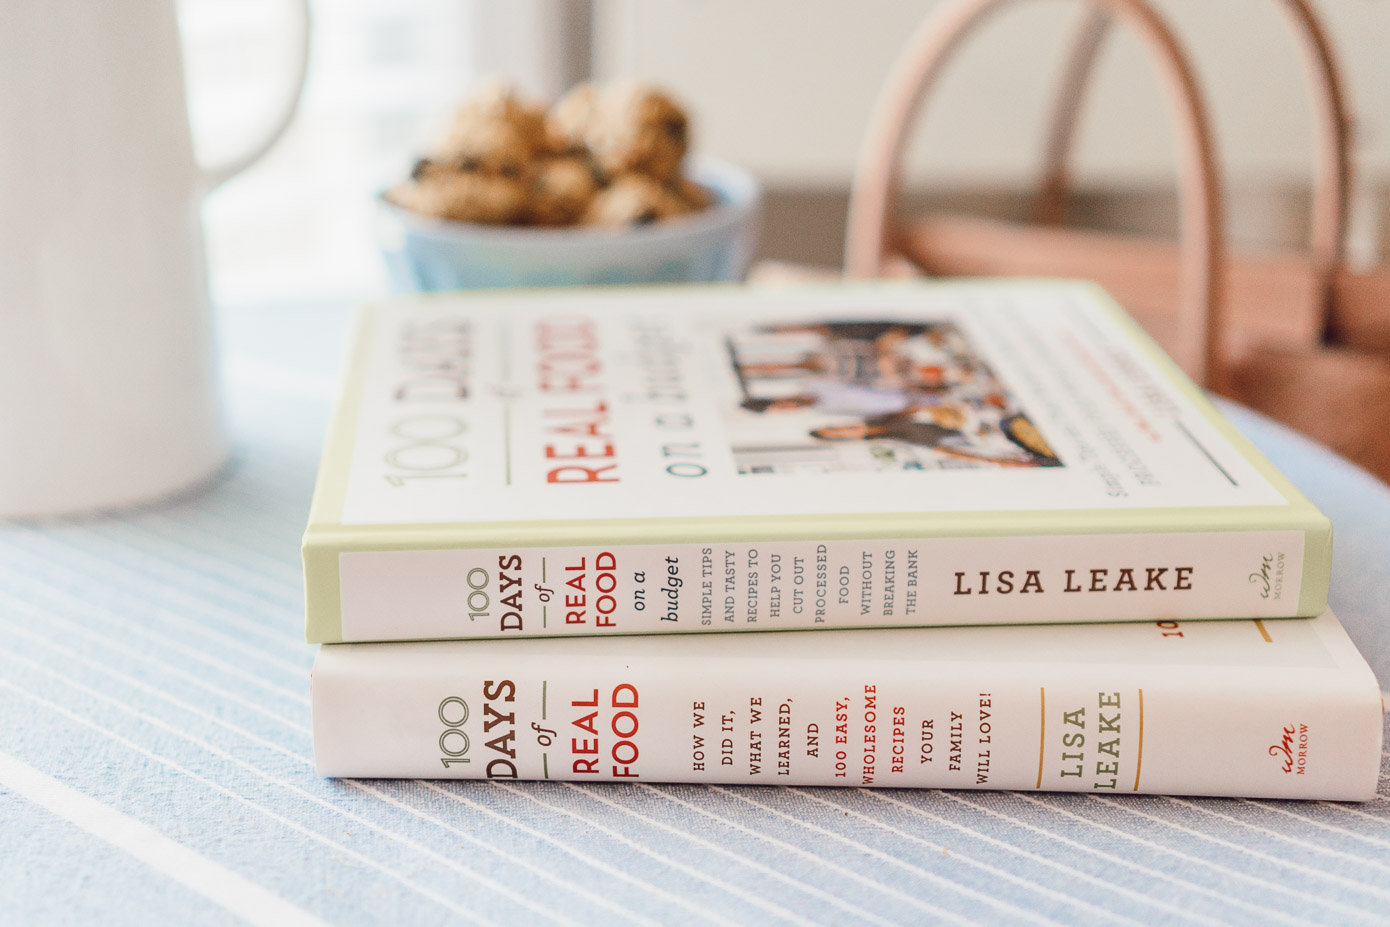 Oatmeal Raisin Energy Bites, A Healthy Cookbook You Need In Your Kitchen featured on Louella Reese Life & Style Blog